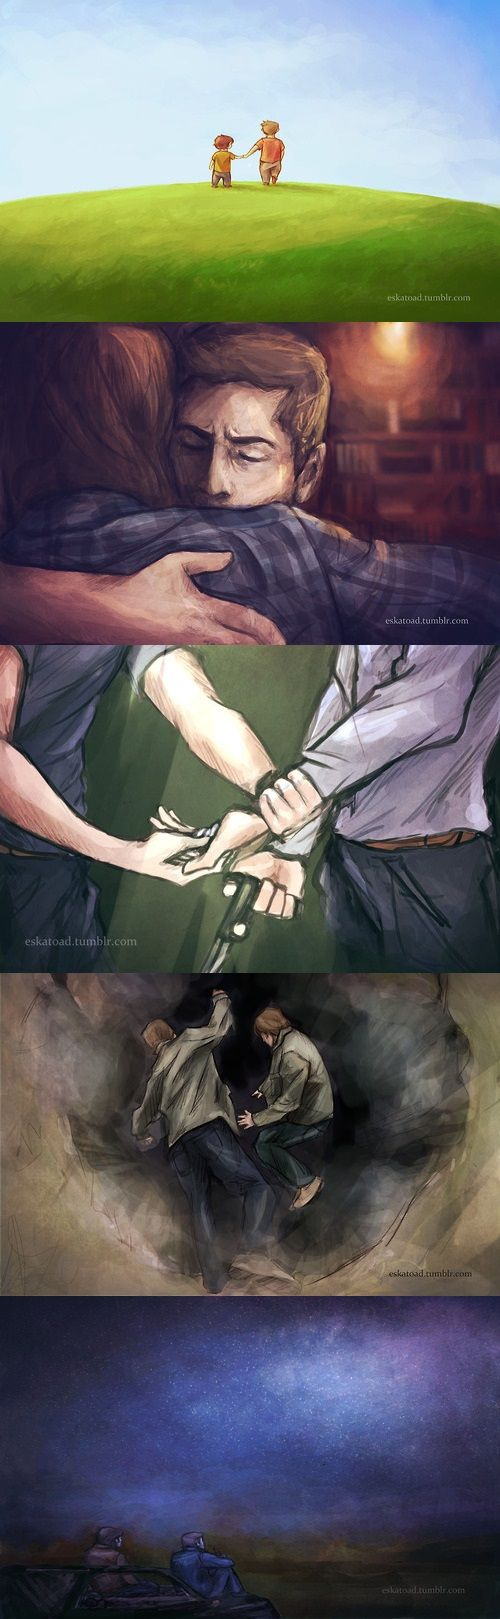 ♪We were opposites at birth / I was steady as a hammer / And no one worried cause / They knew just where I'd be / But they said you were the crooked kind / And you'd never have no worth / But you were always gold to me♪ ||| Sam and Dean ||| Brotherly Feels ||| Supernatural Fan Art by eskatoad [Always Gold - Radical Face]